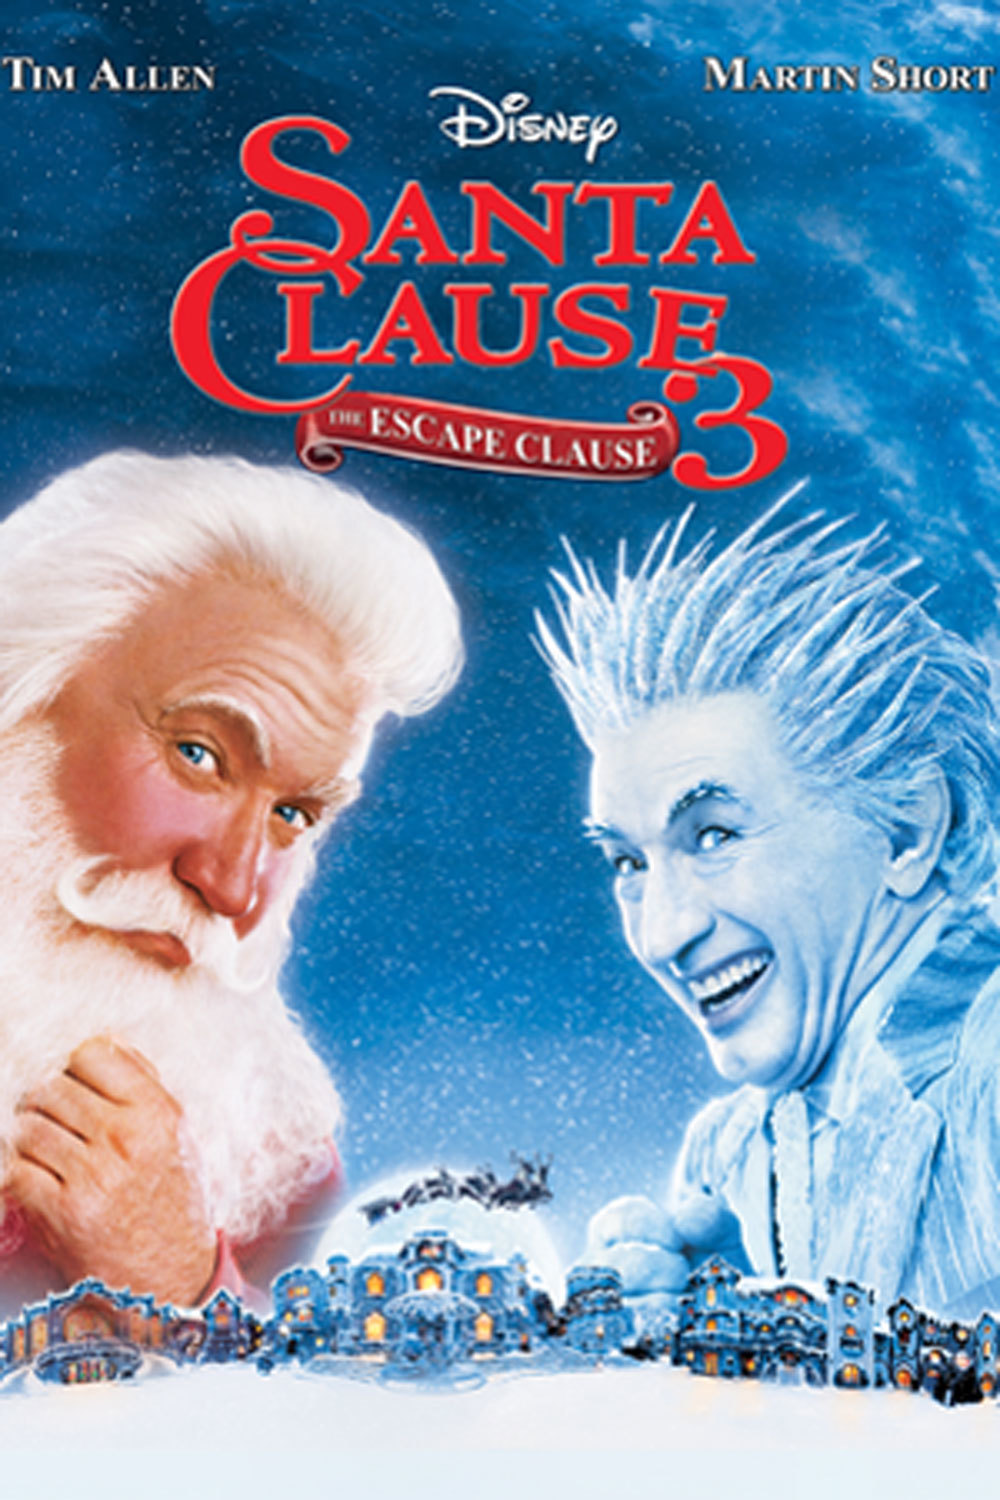 - POSITION: ProducerSTUDIO: Walt Disney PicturesYEAR: 2006GENRE: Adventure, Comedy, FamilyPLOT: Santa, aka Scott Calvin, is faced with double-duty: how to keep his new family happy, and how to stop Jack Frost from taking over Christmas.DIRECTOR: Michael LembeckCAST: Tim Allen, Elizabeth Mitchell, Eric Lloyd, Spencer BreslinLOCATION: British Columbia/Alberta, CanadaIMDBIMDB PROTRAILERBEHIND THE SCENESBOX OFFICE MOJOSTREAMING